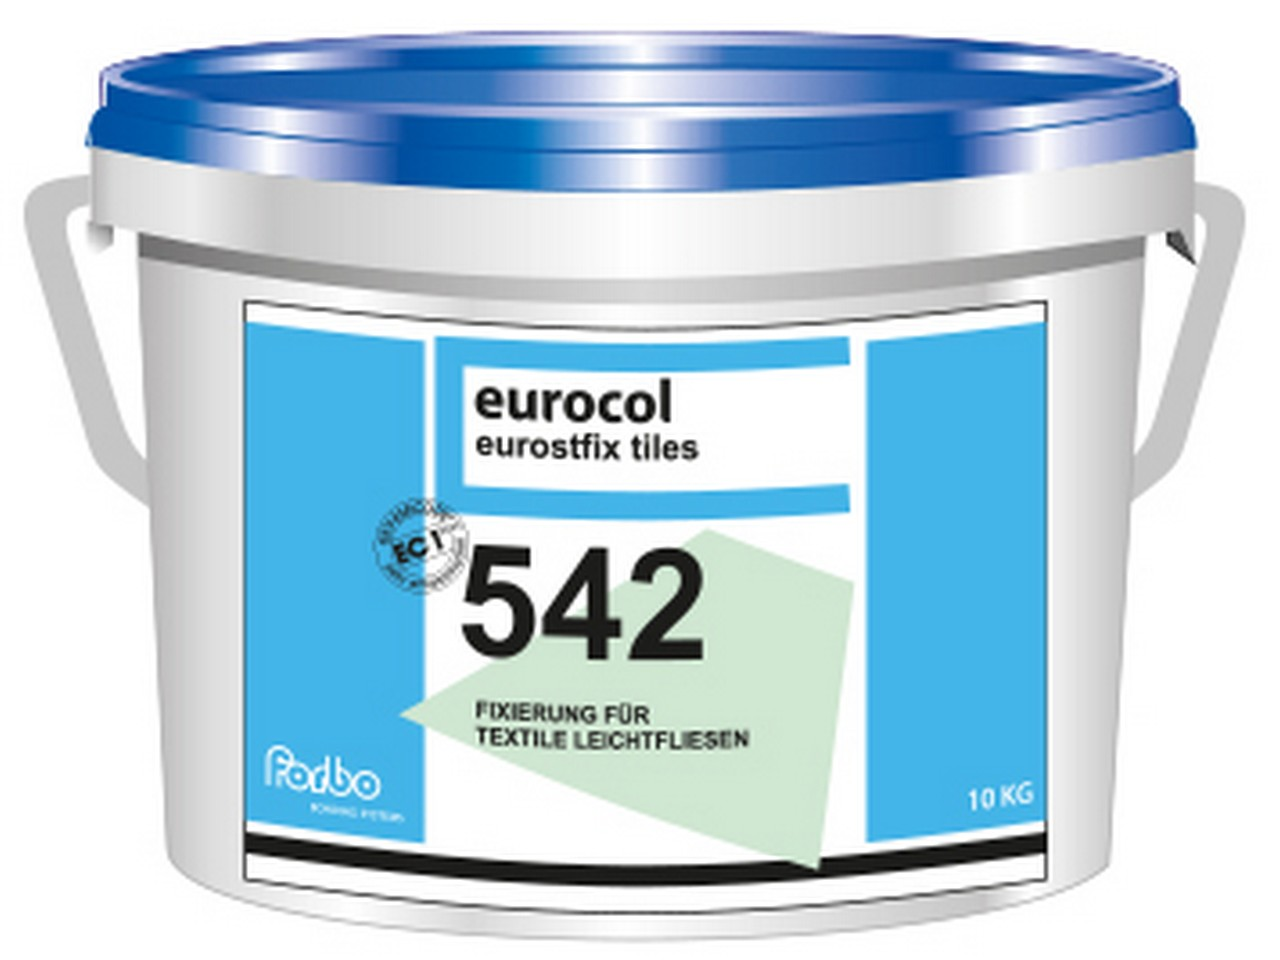 542 Eurofix Tiles. Forbo 542.